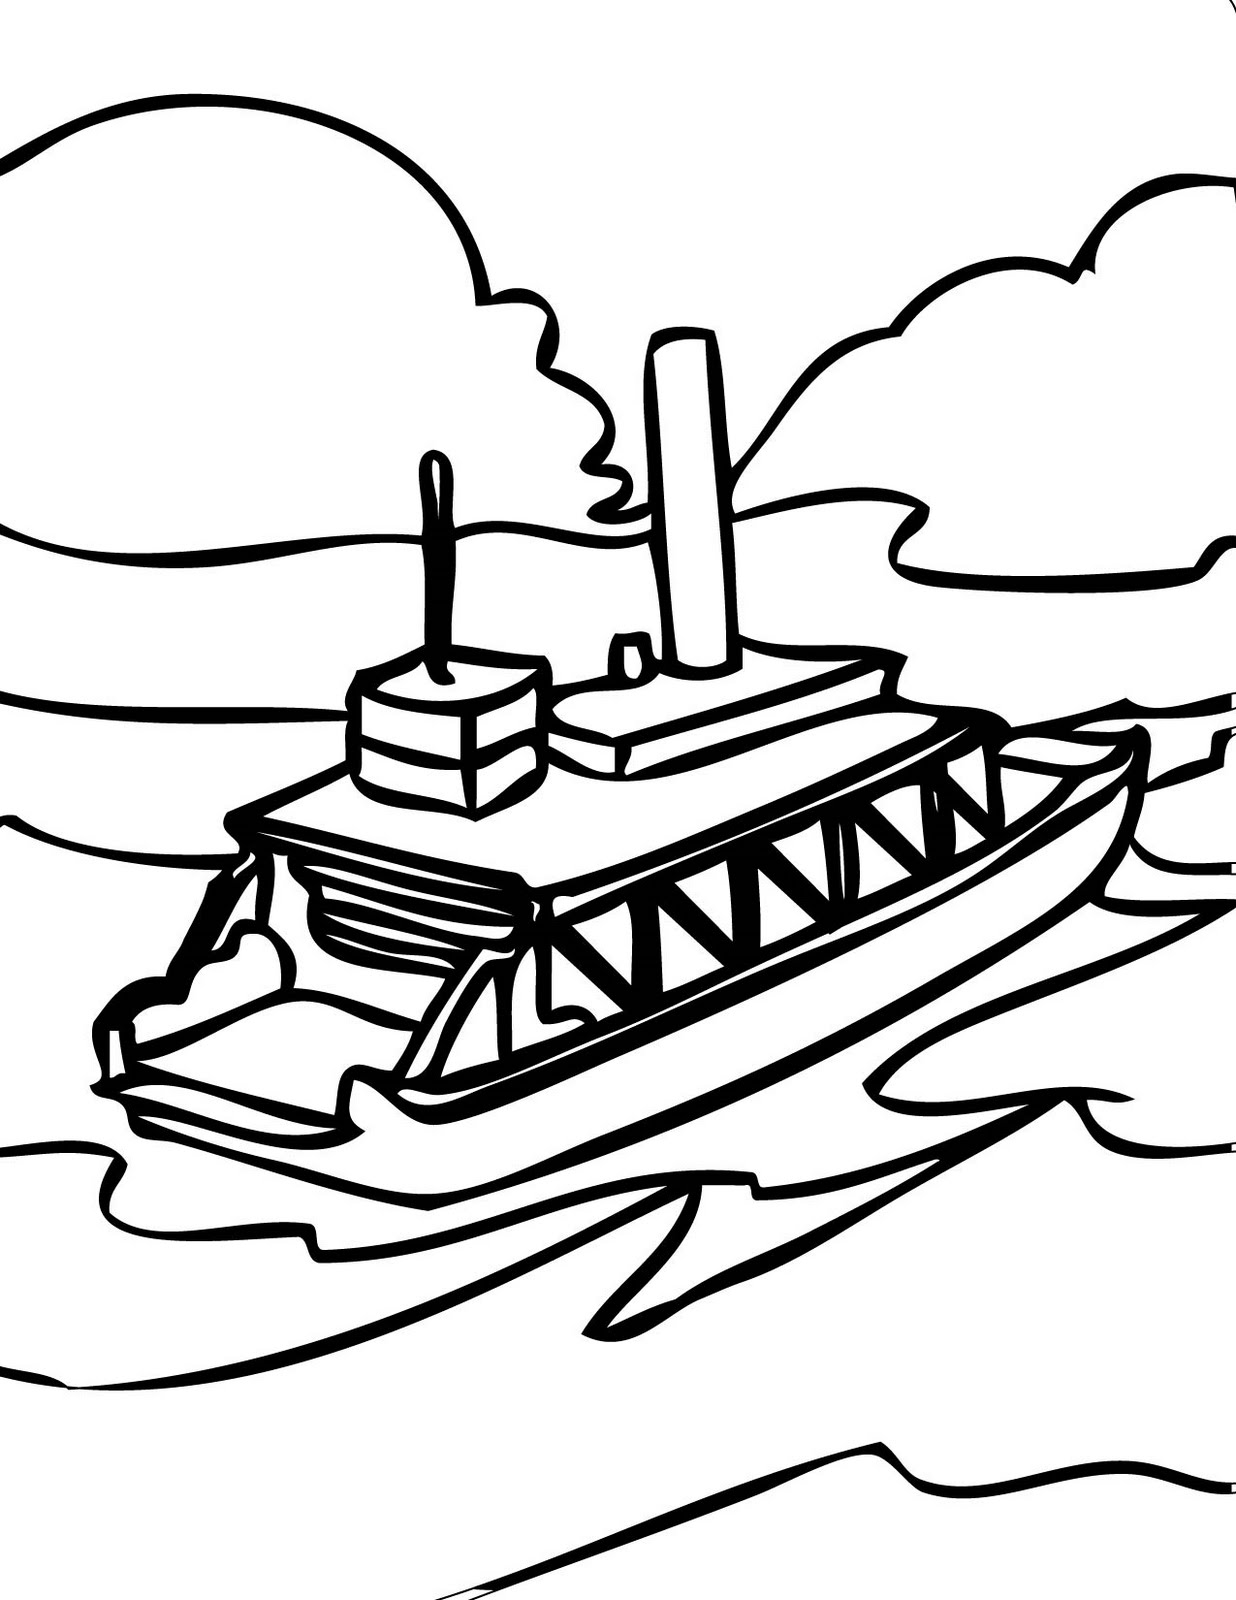 Ferry clipart tug boat Clipart 20clipart Ferry collection Panda